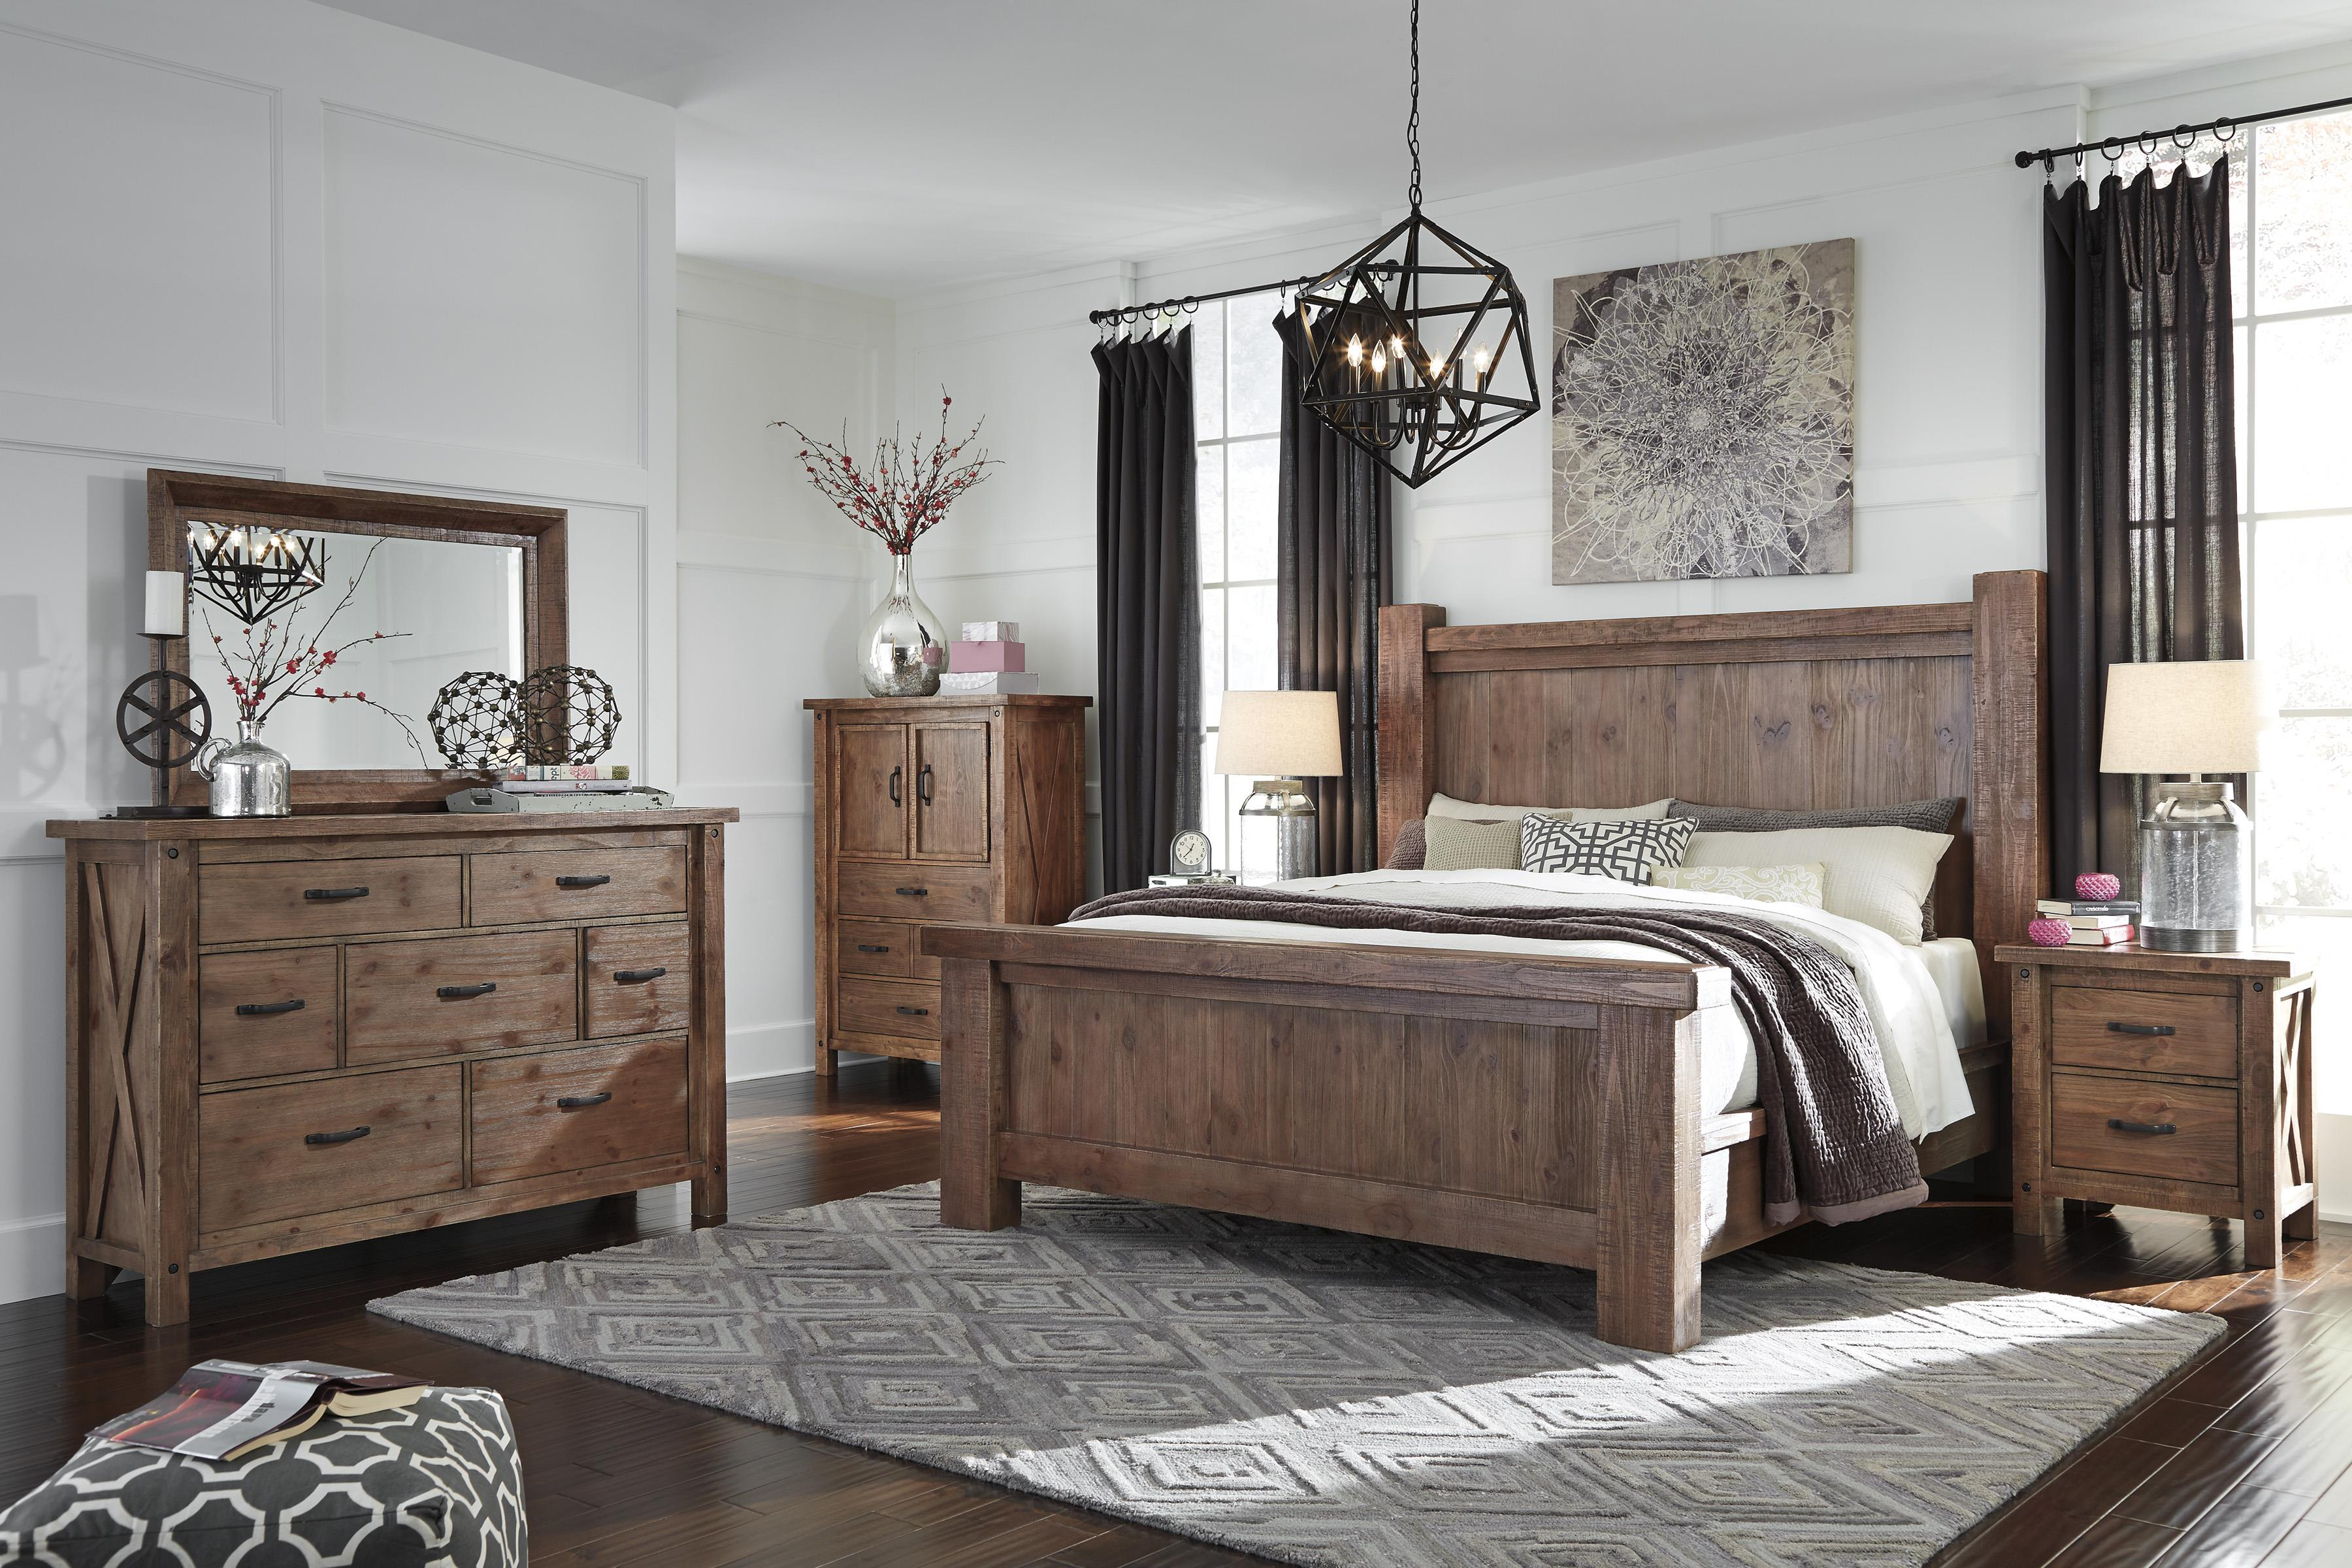 Signature Design by Ashley Tamilo California King Bedroom Group - Item Number: B714 CK Bedroom Group 2